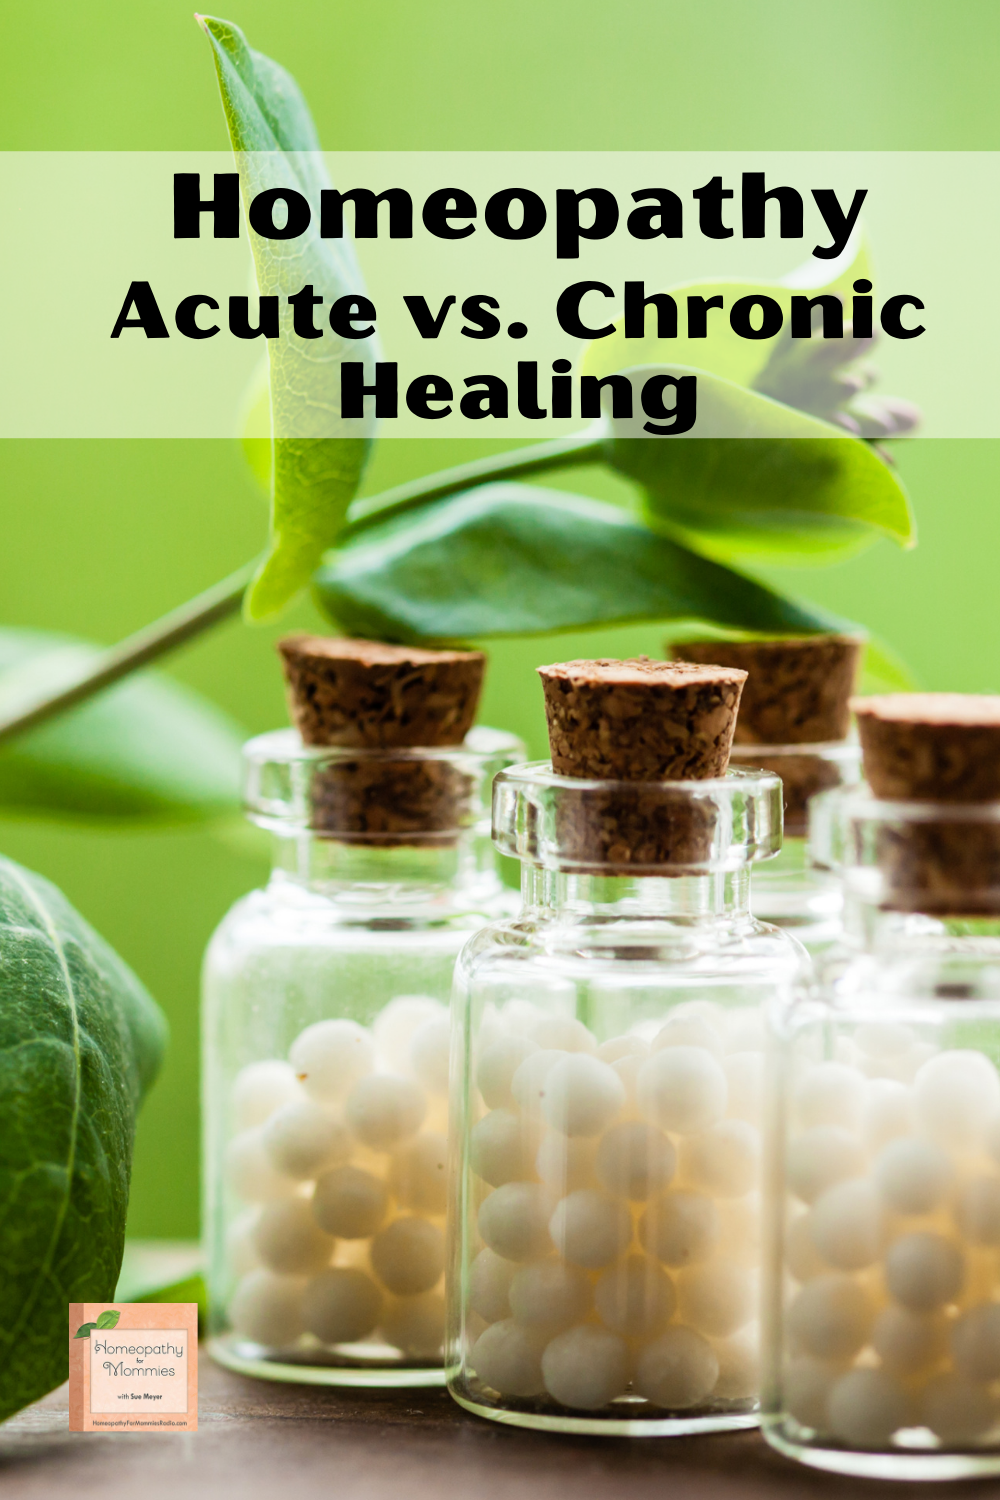 There seems to be some confusion about healing Acute cases over Chronic cases.